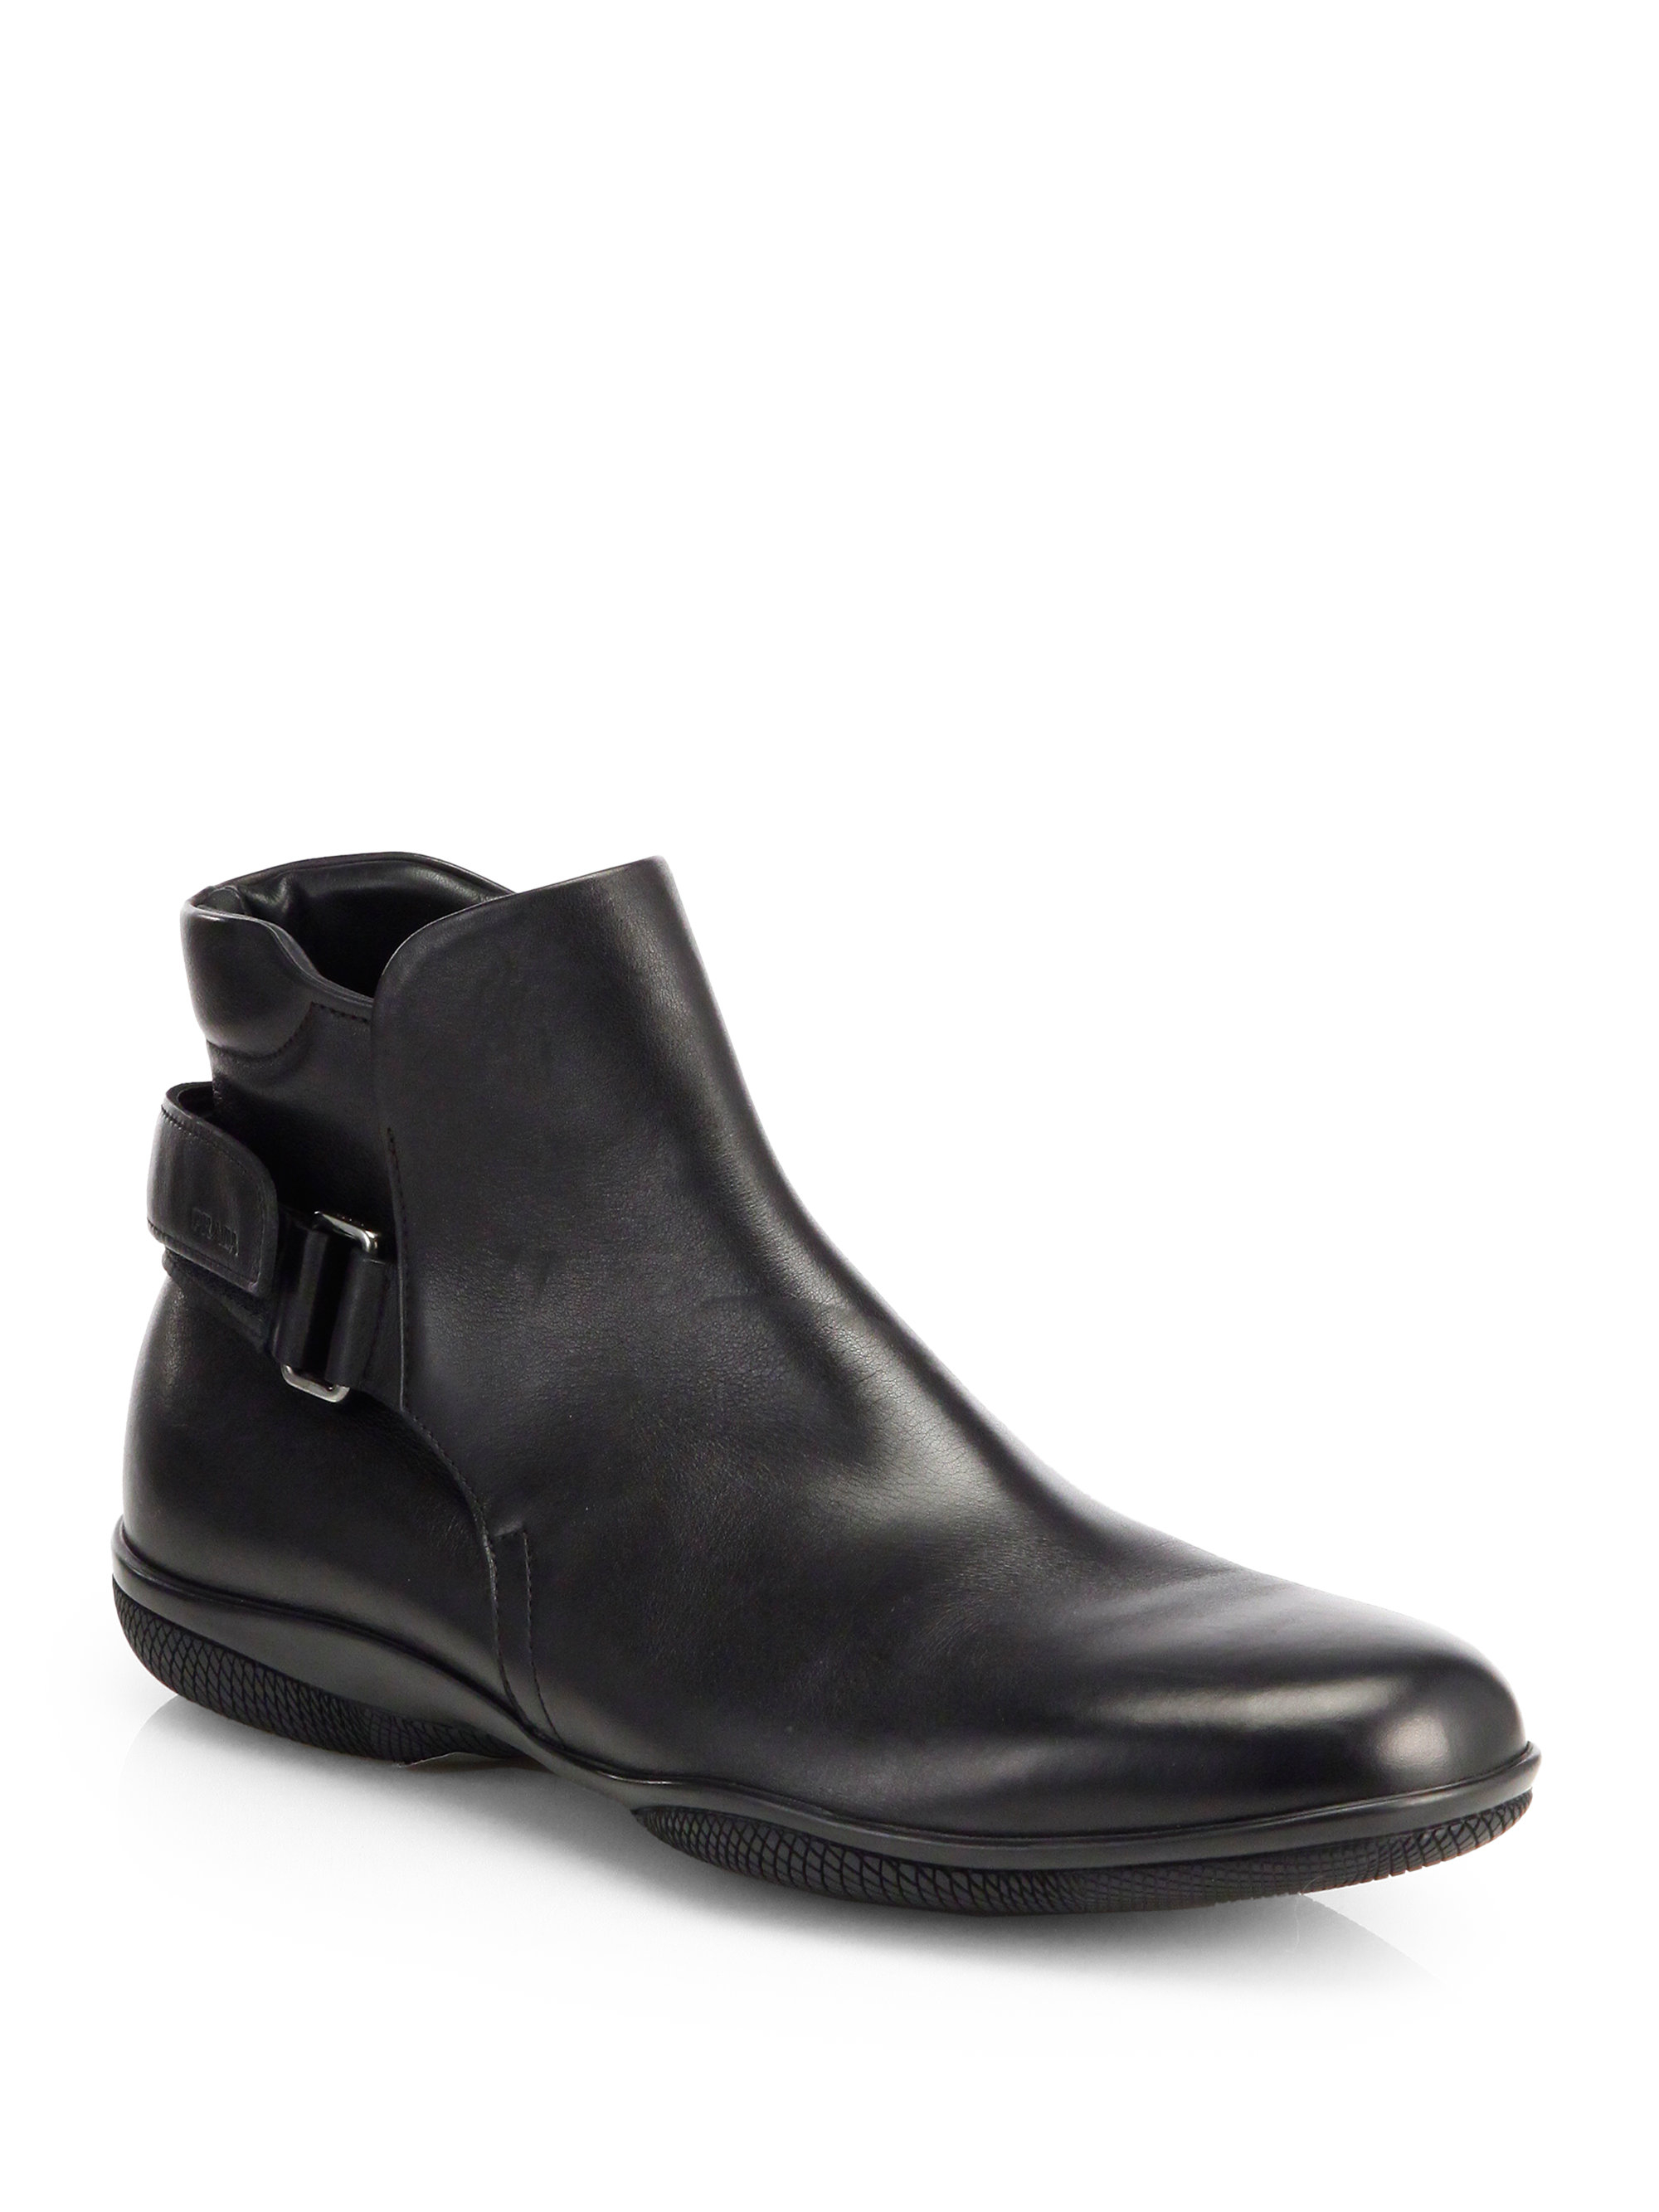 prada buckled leather ankle boots in black for lyst